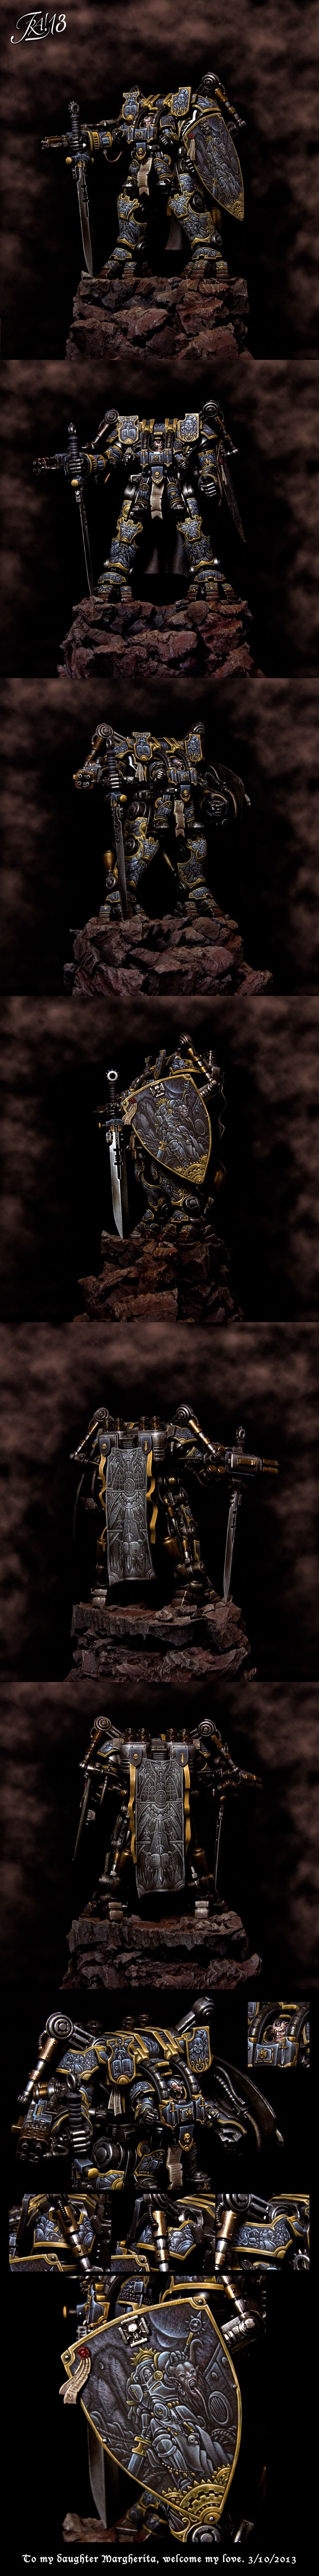 Grey Knights Dreadknight Detalle y color del terreno.